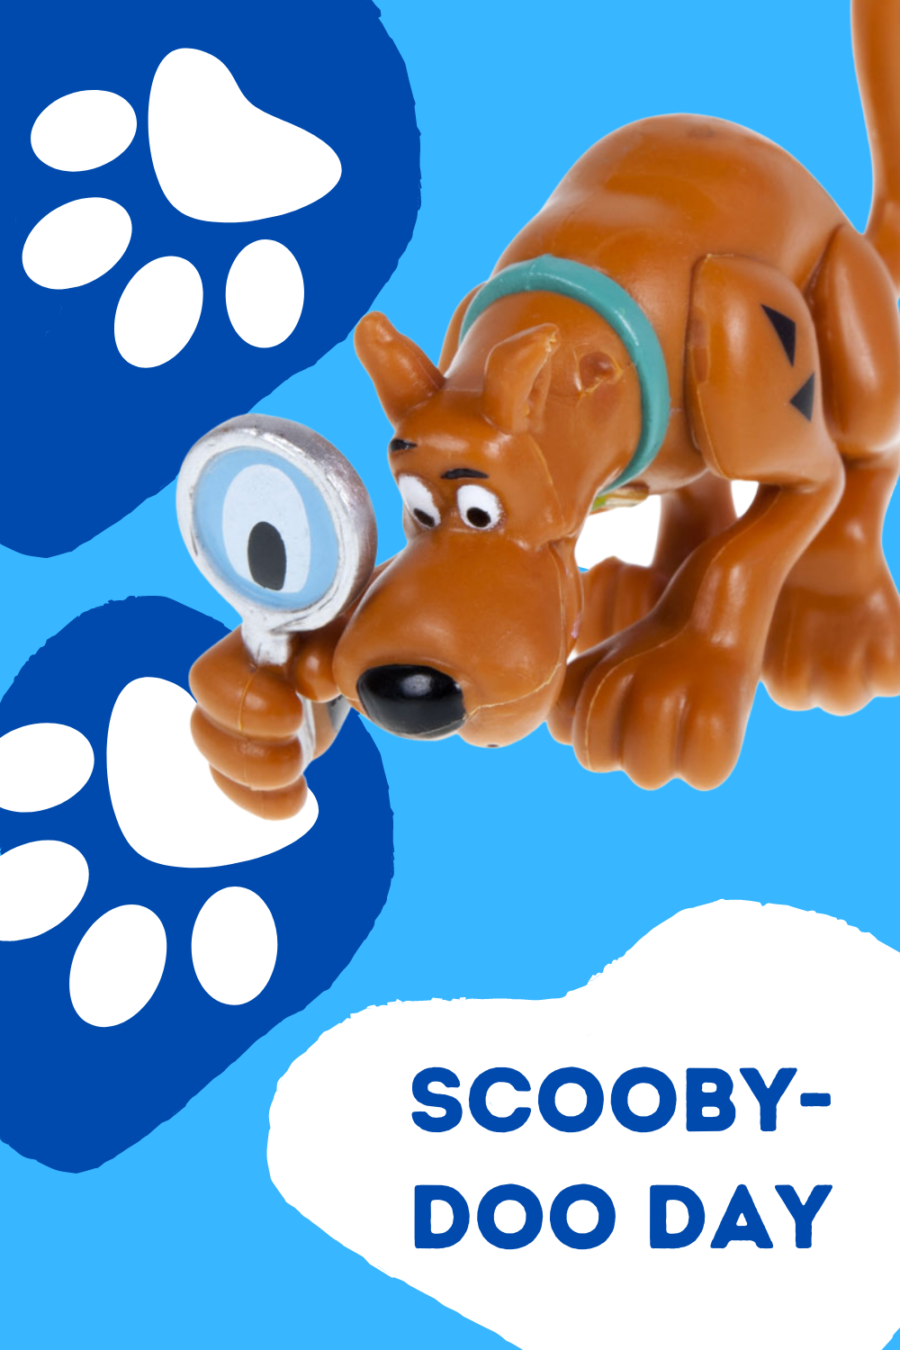 Scooby Doo Day